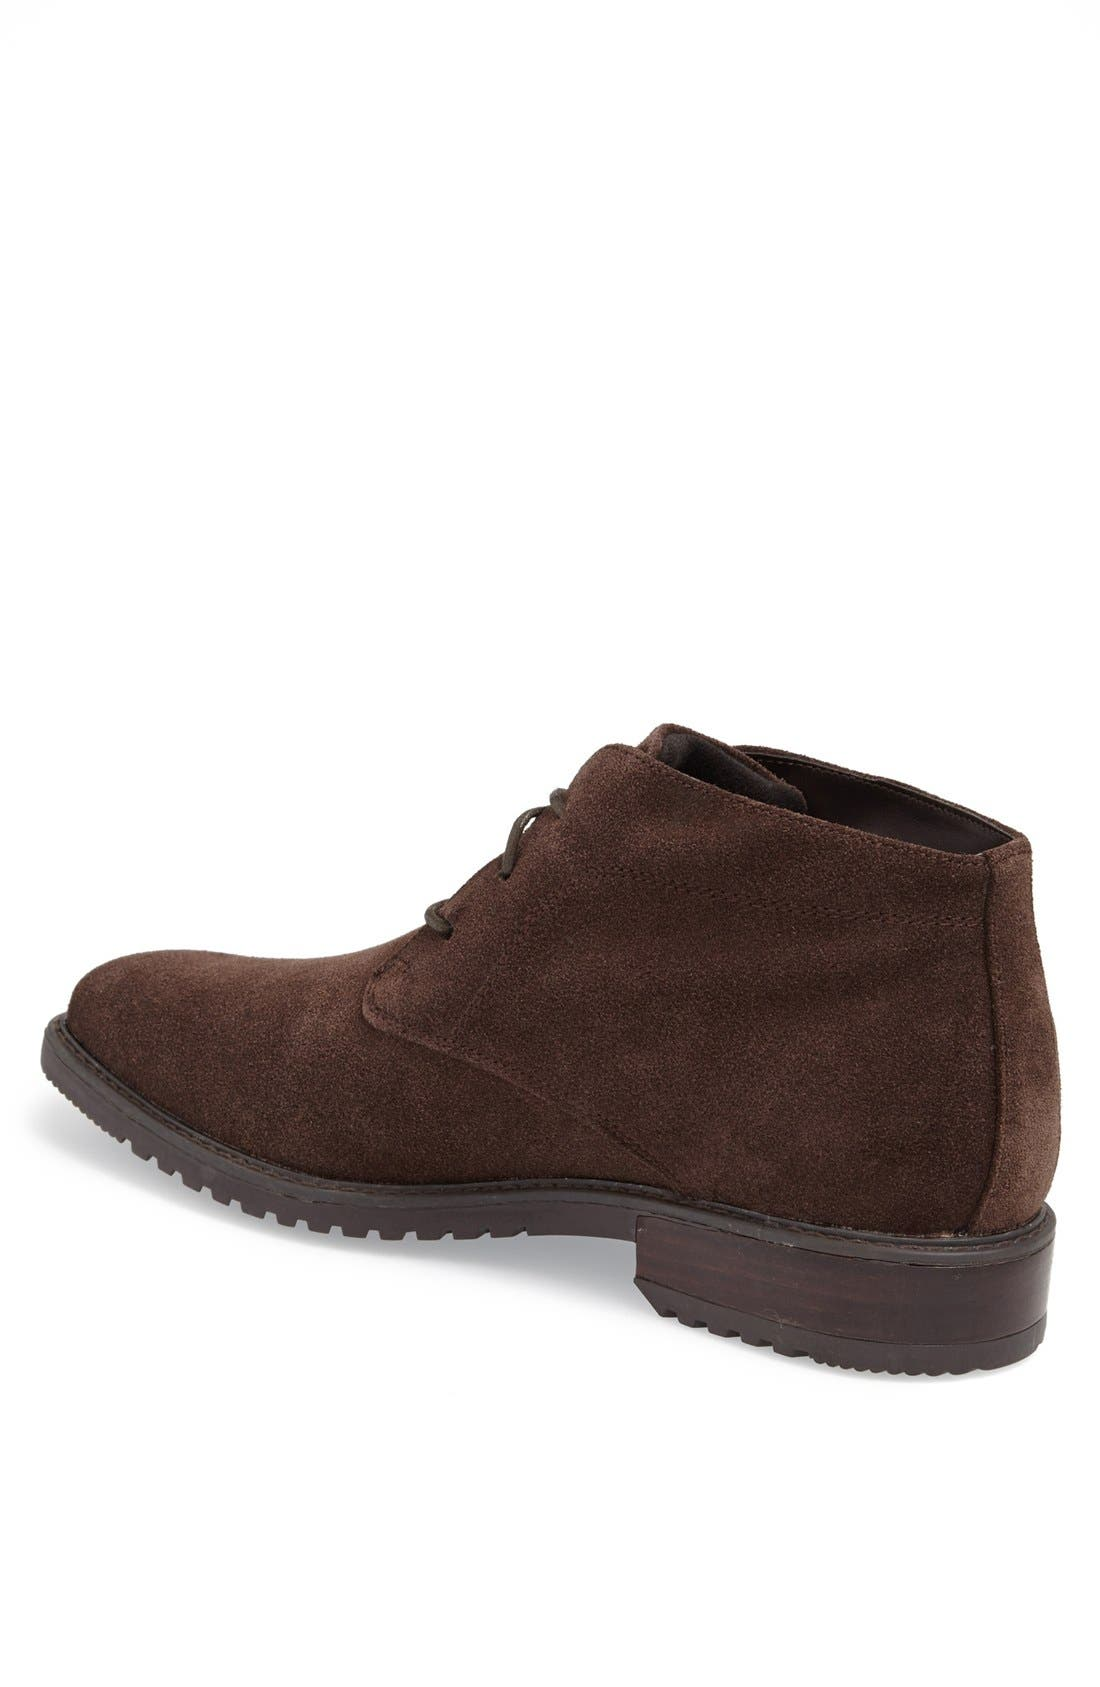 'Griffin' Waterproof Suede Chukka Boot,                             Alternate thumbnail 2, color,                             201